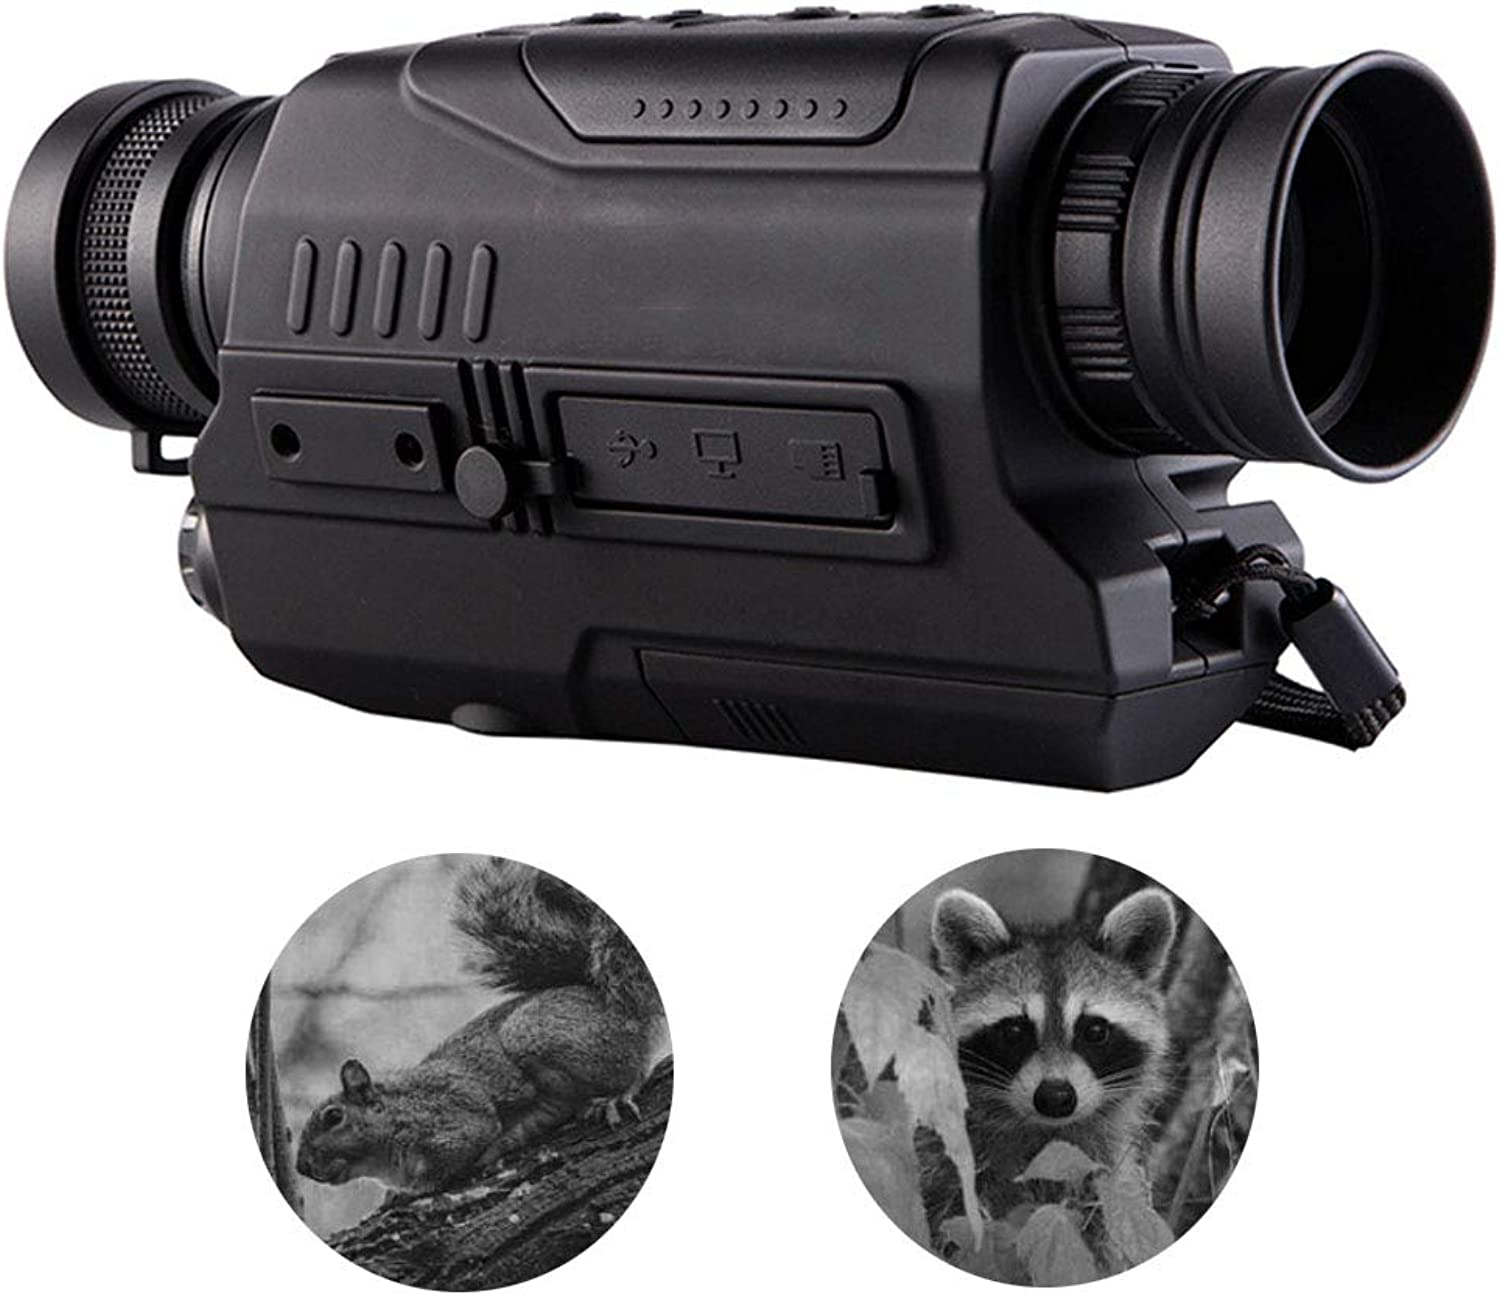 Digital Night Vision  Monocular 5X32 with Picture Video Recording Function Infrared Lighting Hunting Equipmentfor Hunting&Scouting Game